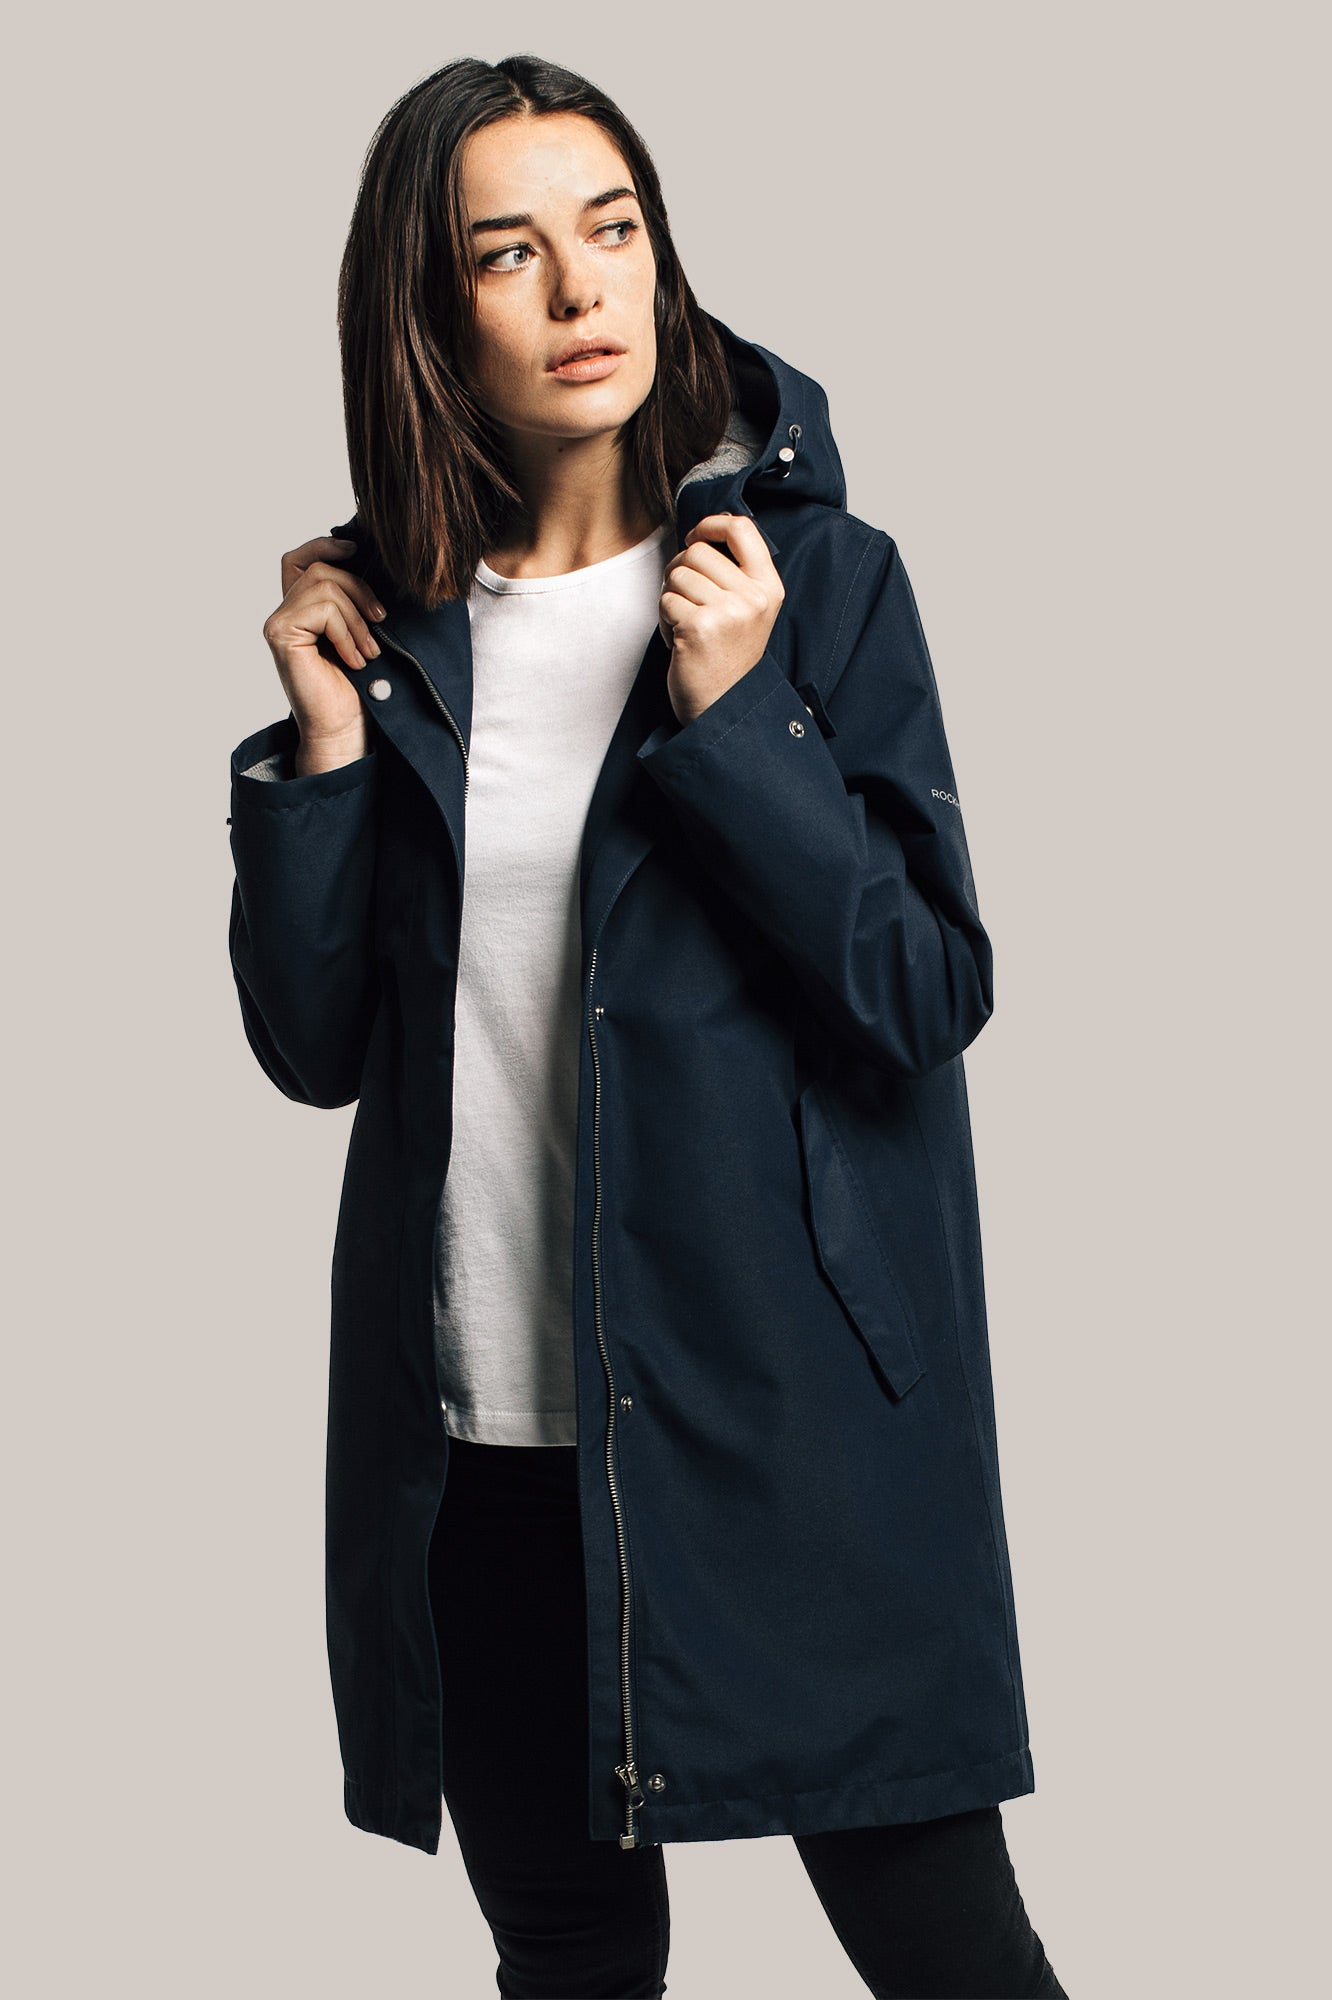 Rockholly Women's Long Transitional (Navy)